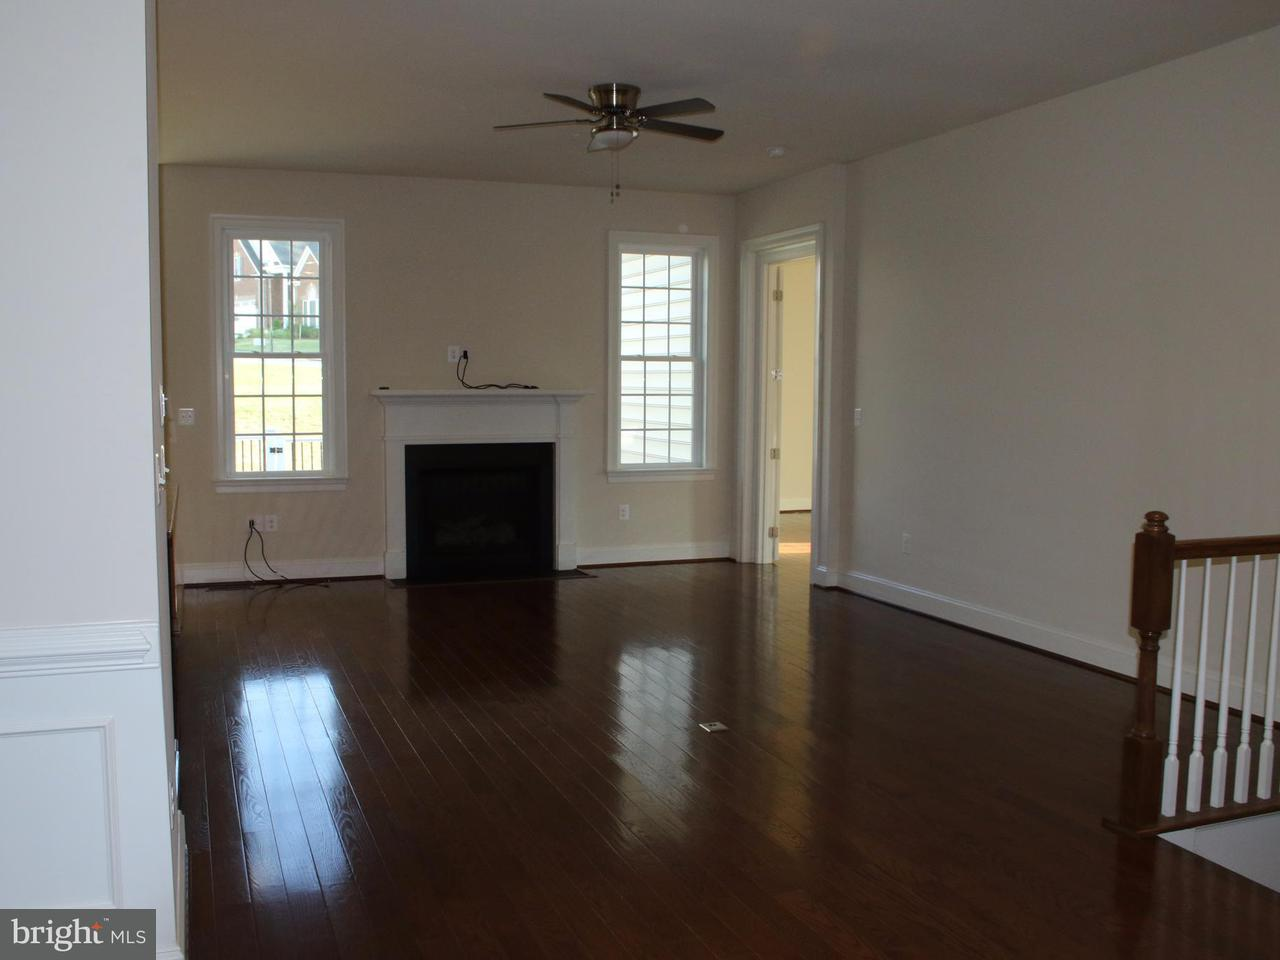 Additional photo for property listing at 2532 SOPHIA CHASE Drive 2532 SOPHIA CHASE Drive Marriottsville, Maryland 21104 Estados Unidos